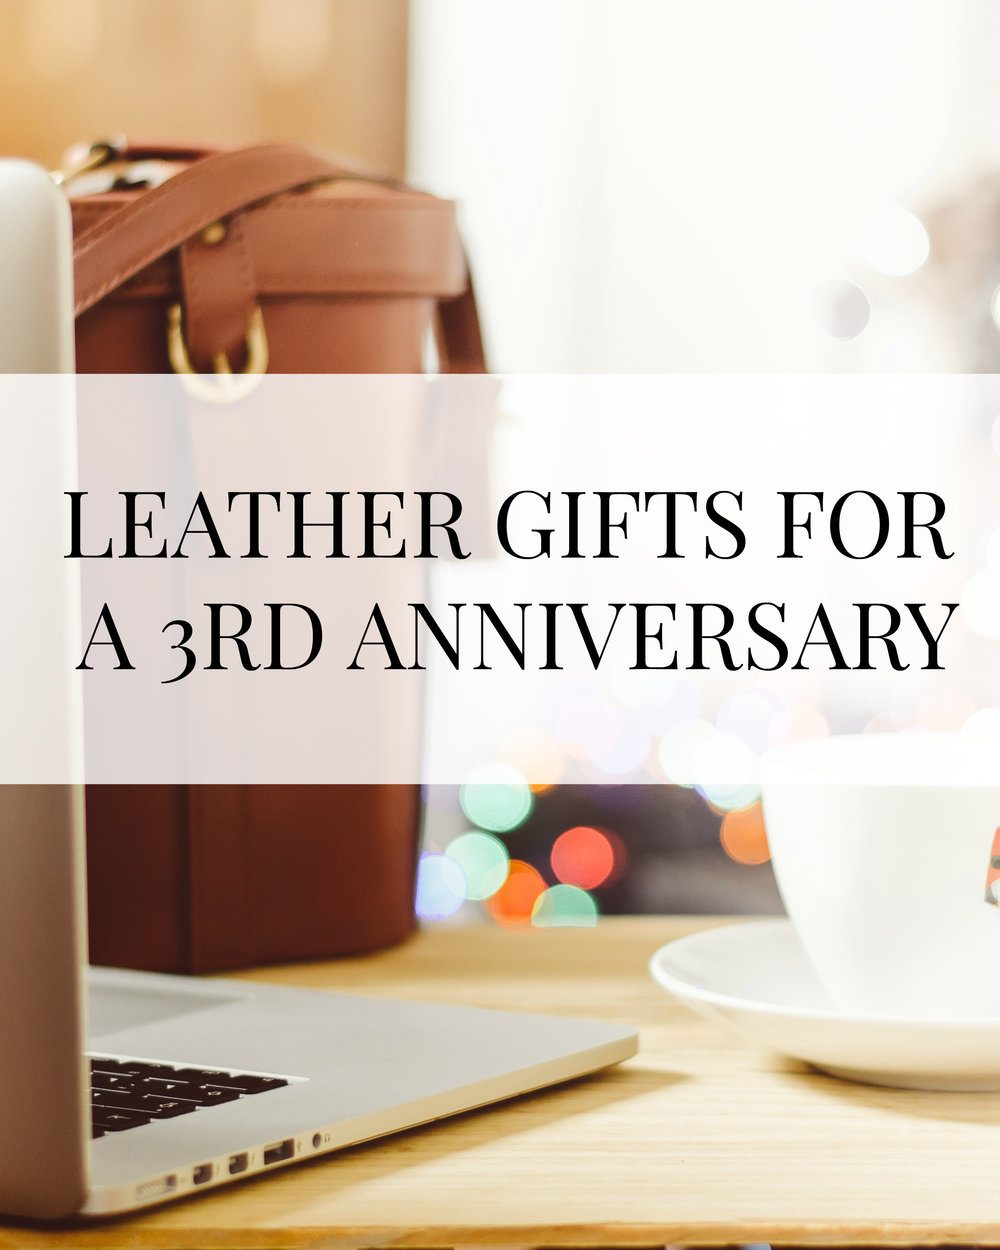 A roundup of leather gift for a 3r Anniversary and includes leather gifts for her, leather gifts for him, and leather gifts for both. // www.ElleTalk.com